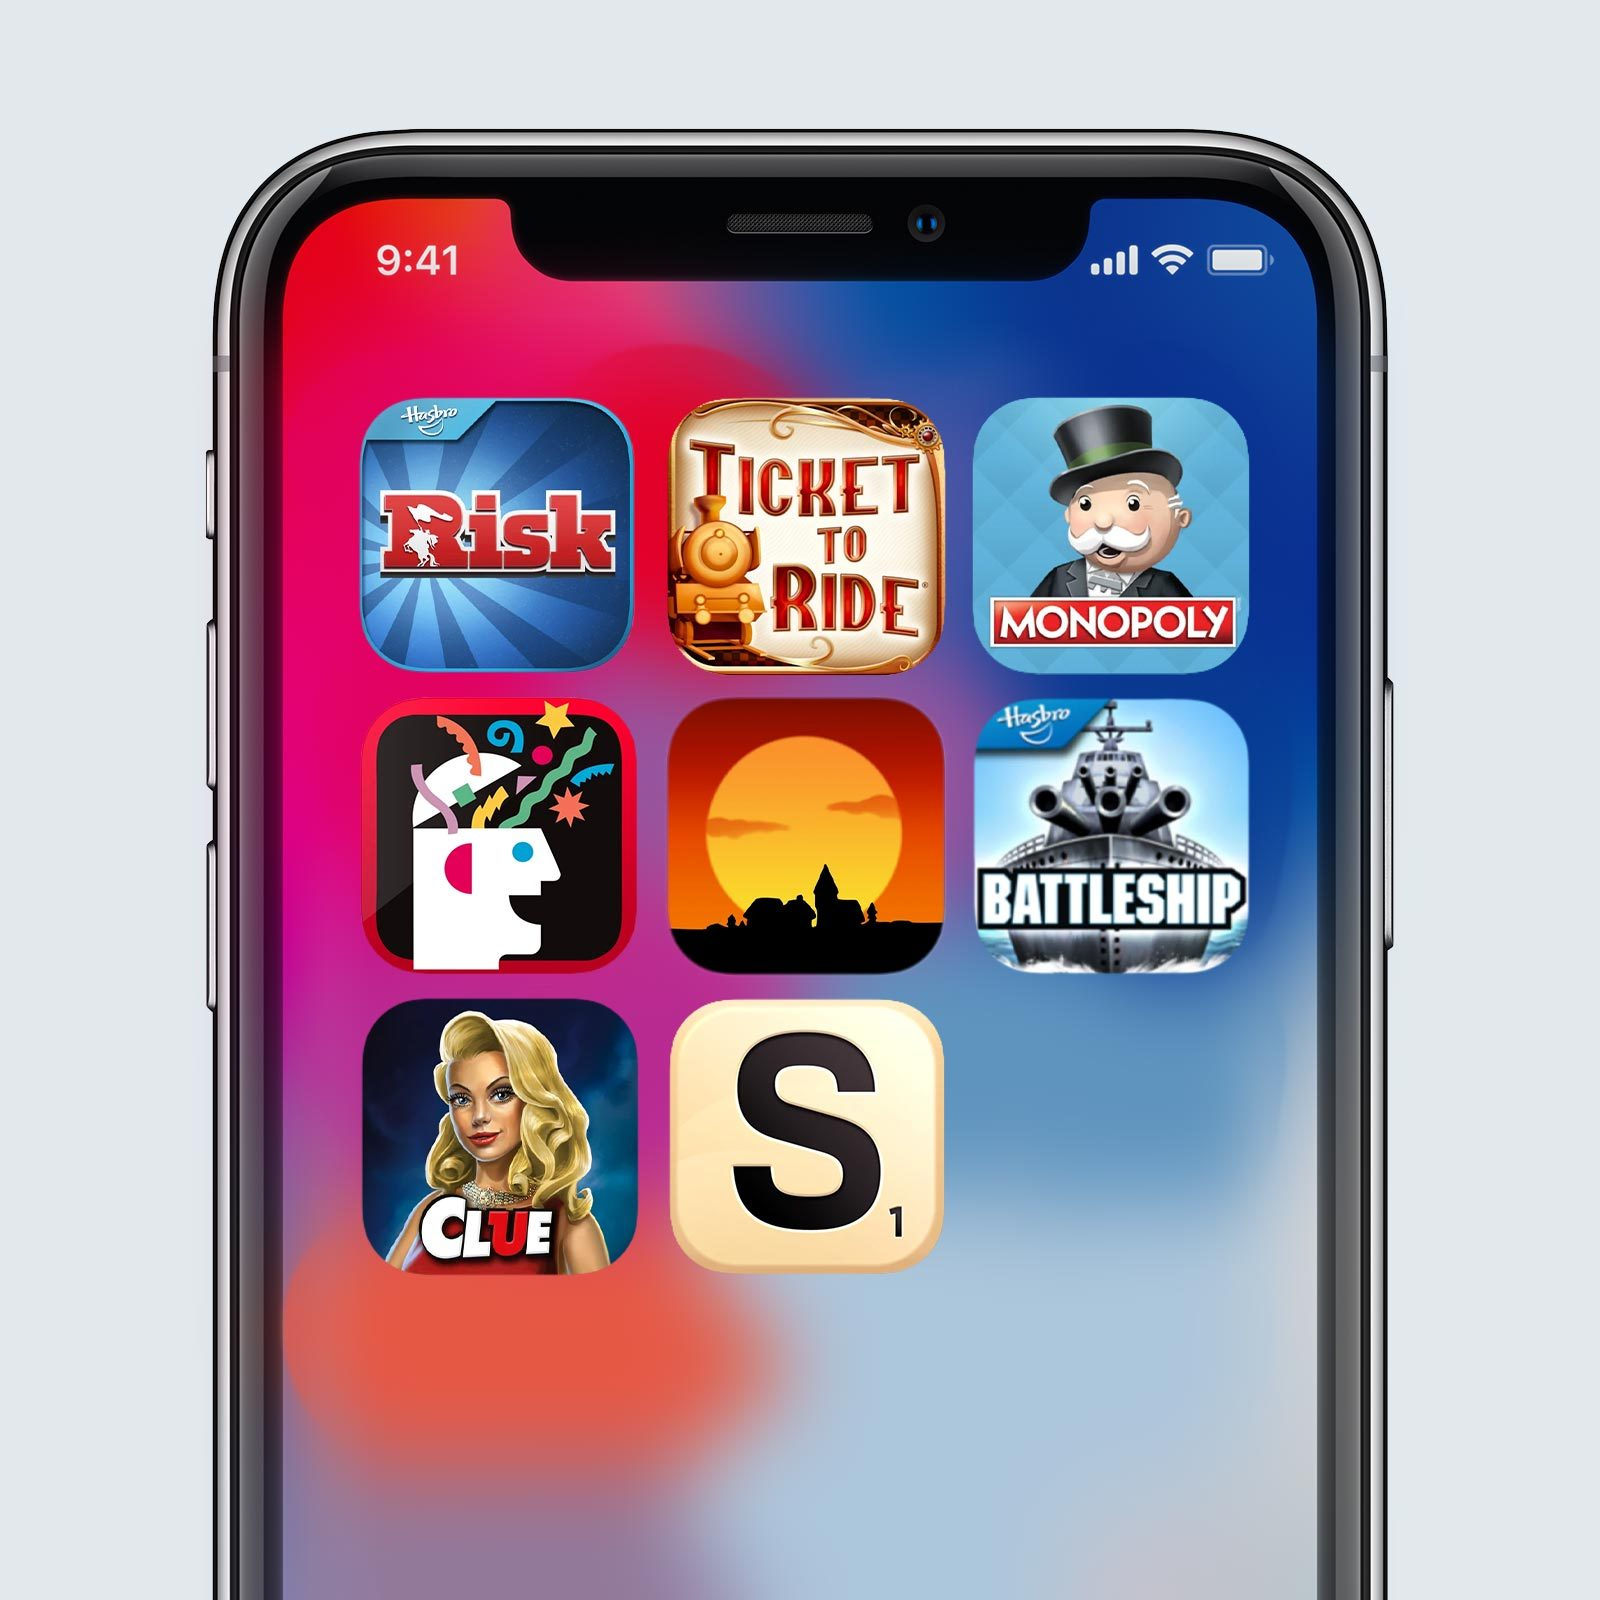 Grid of different iPhone game applications